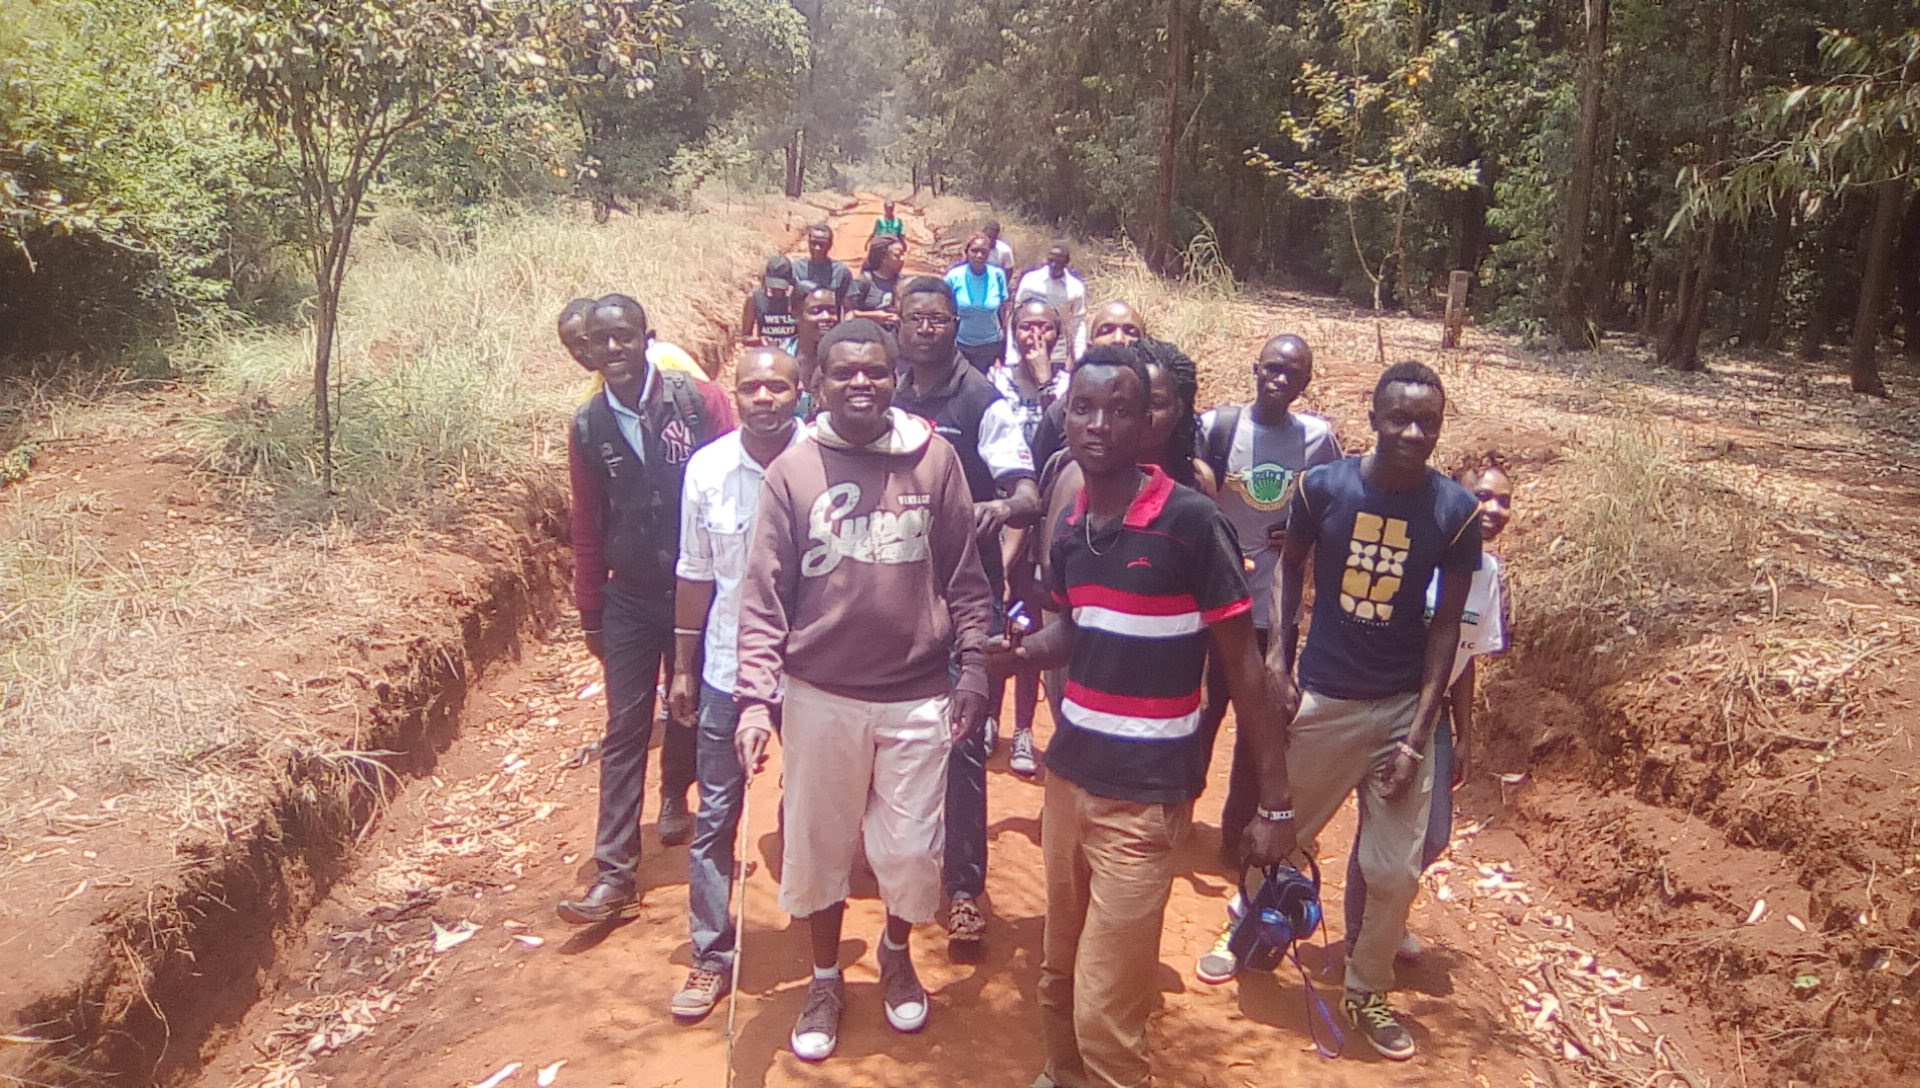 School of Environment in Karura Forest